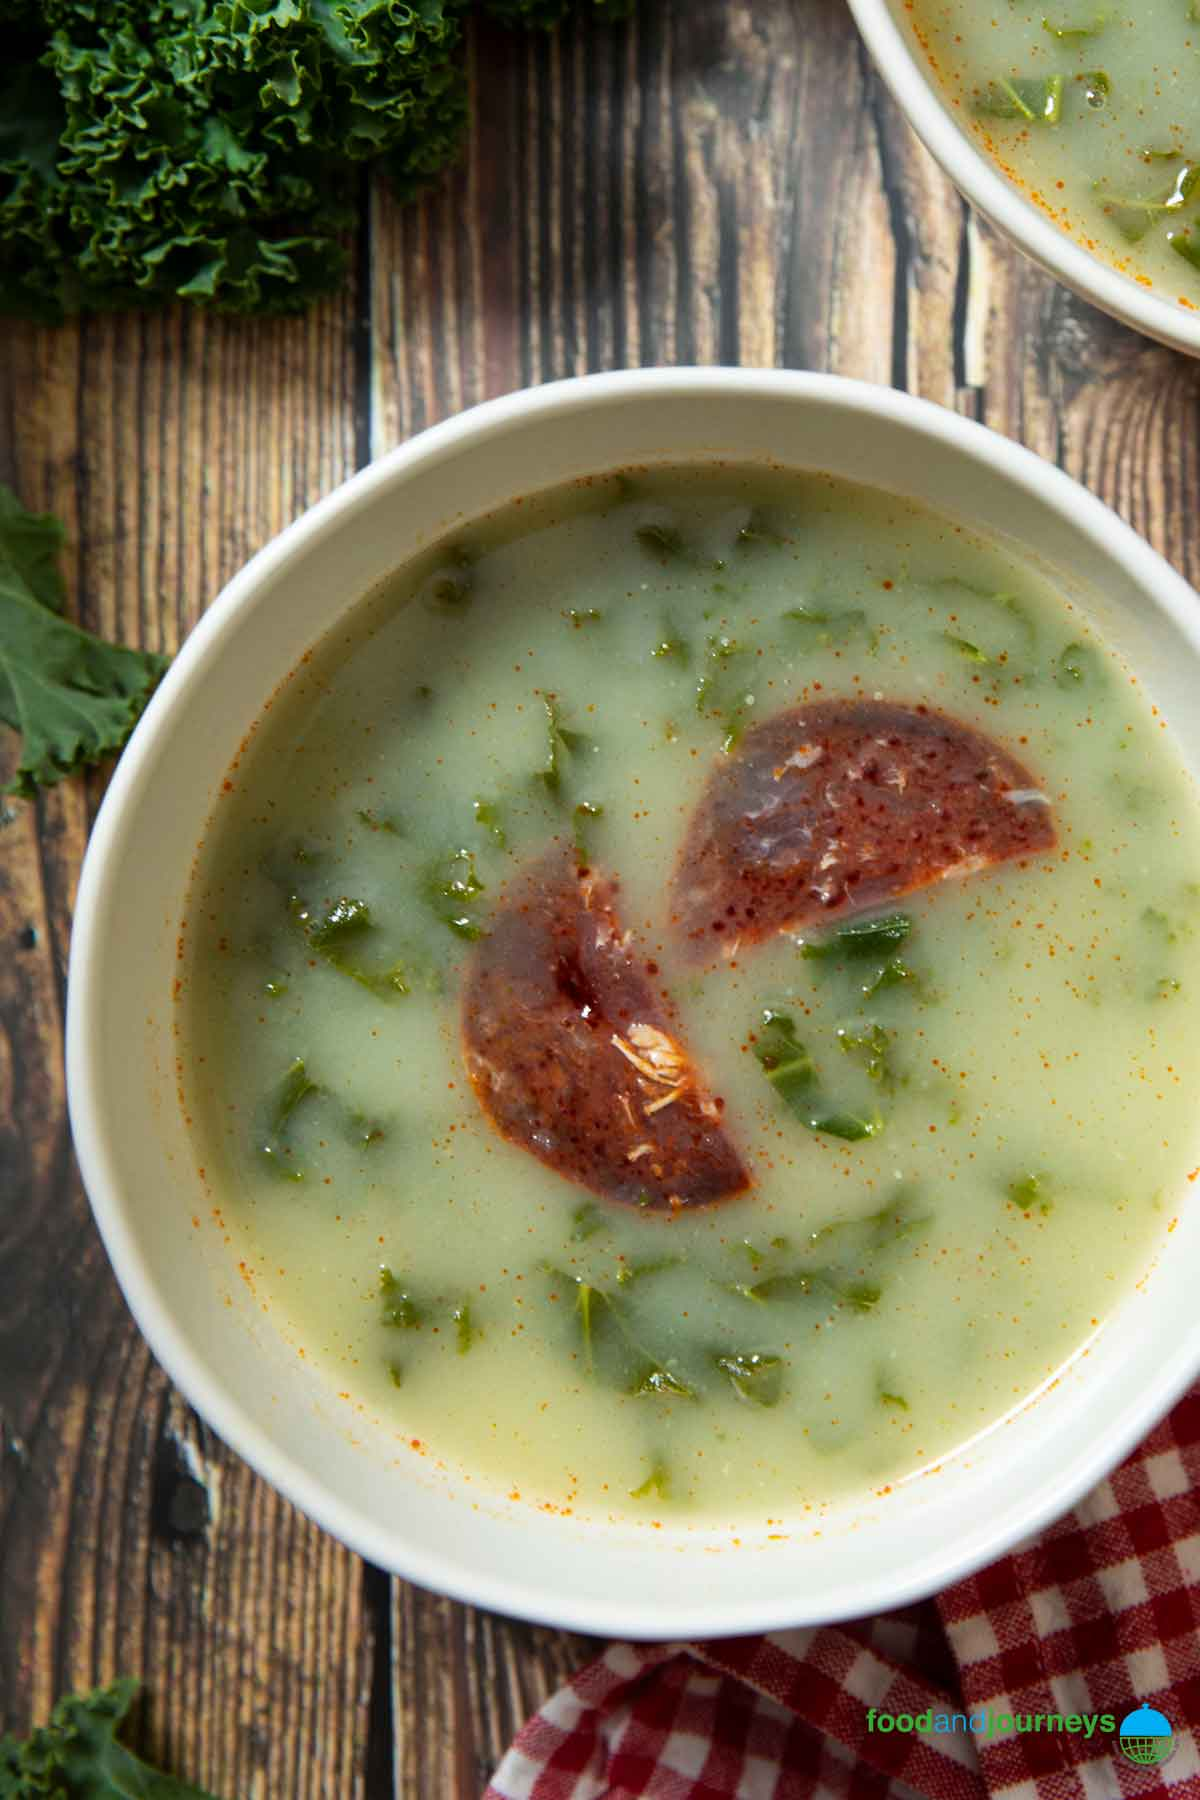 A serving of Portuguese Kale Soup, with slices of chorizo on top.